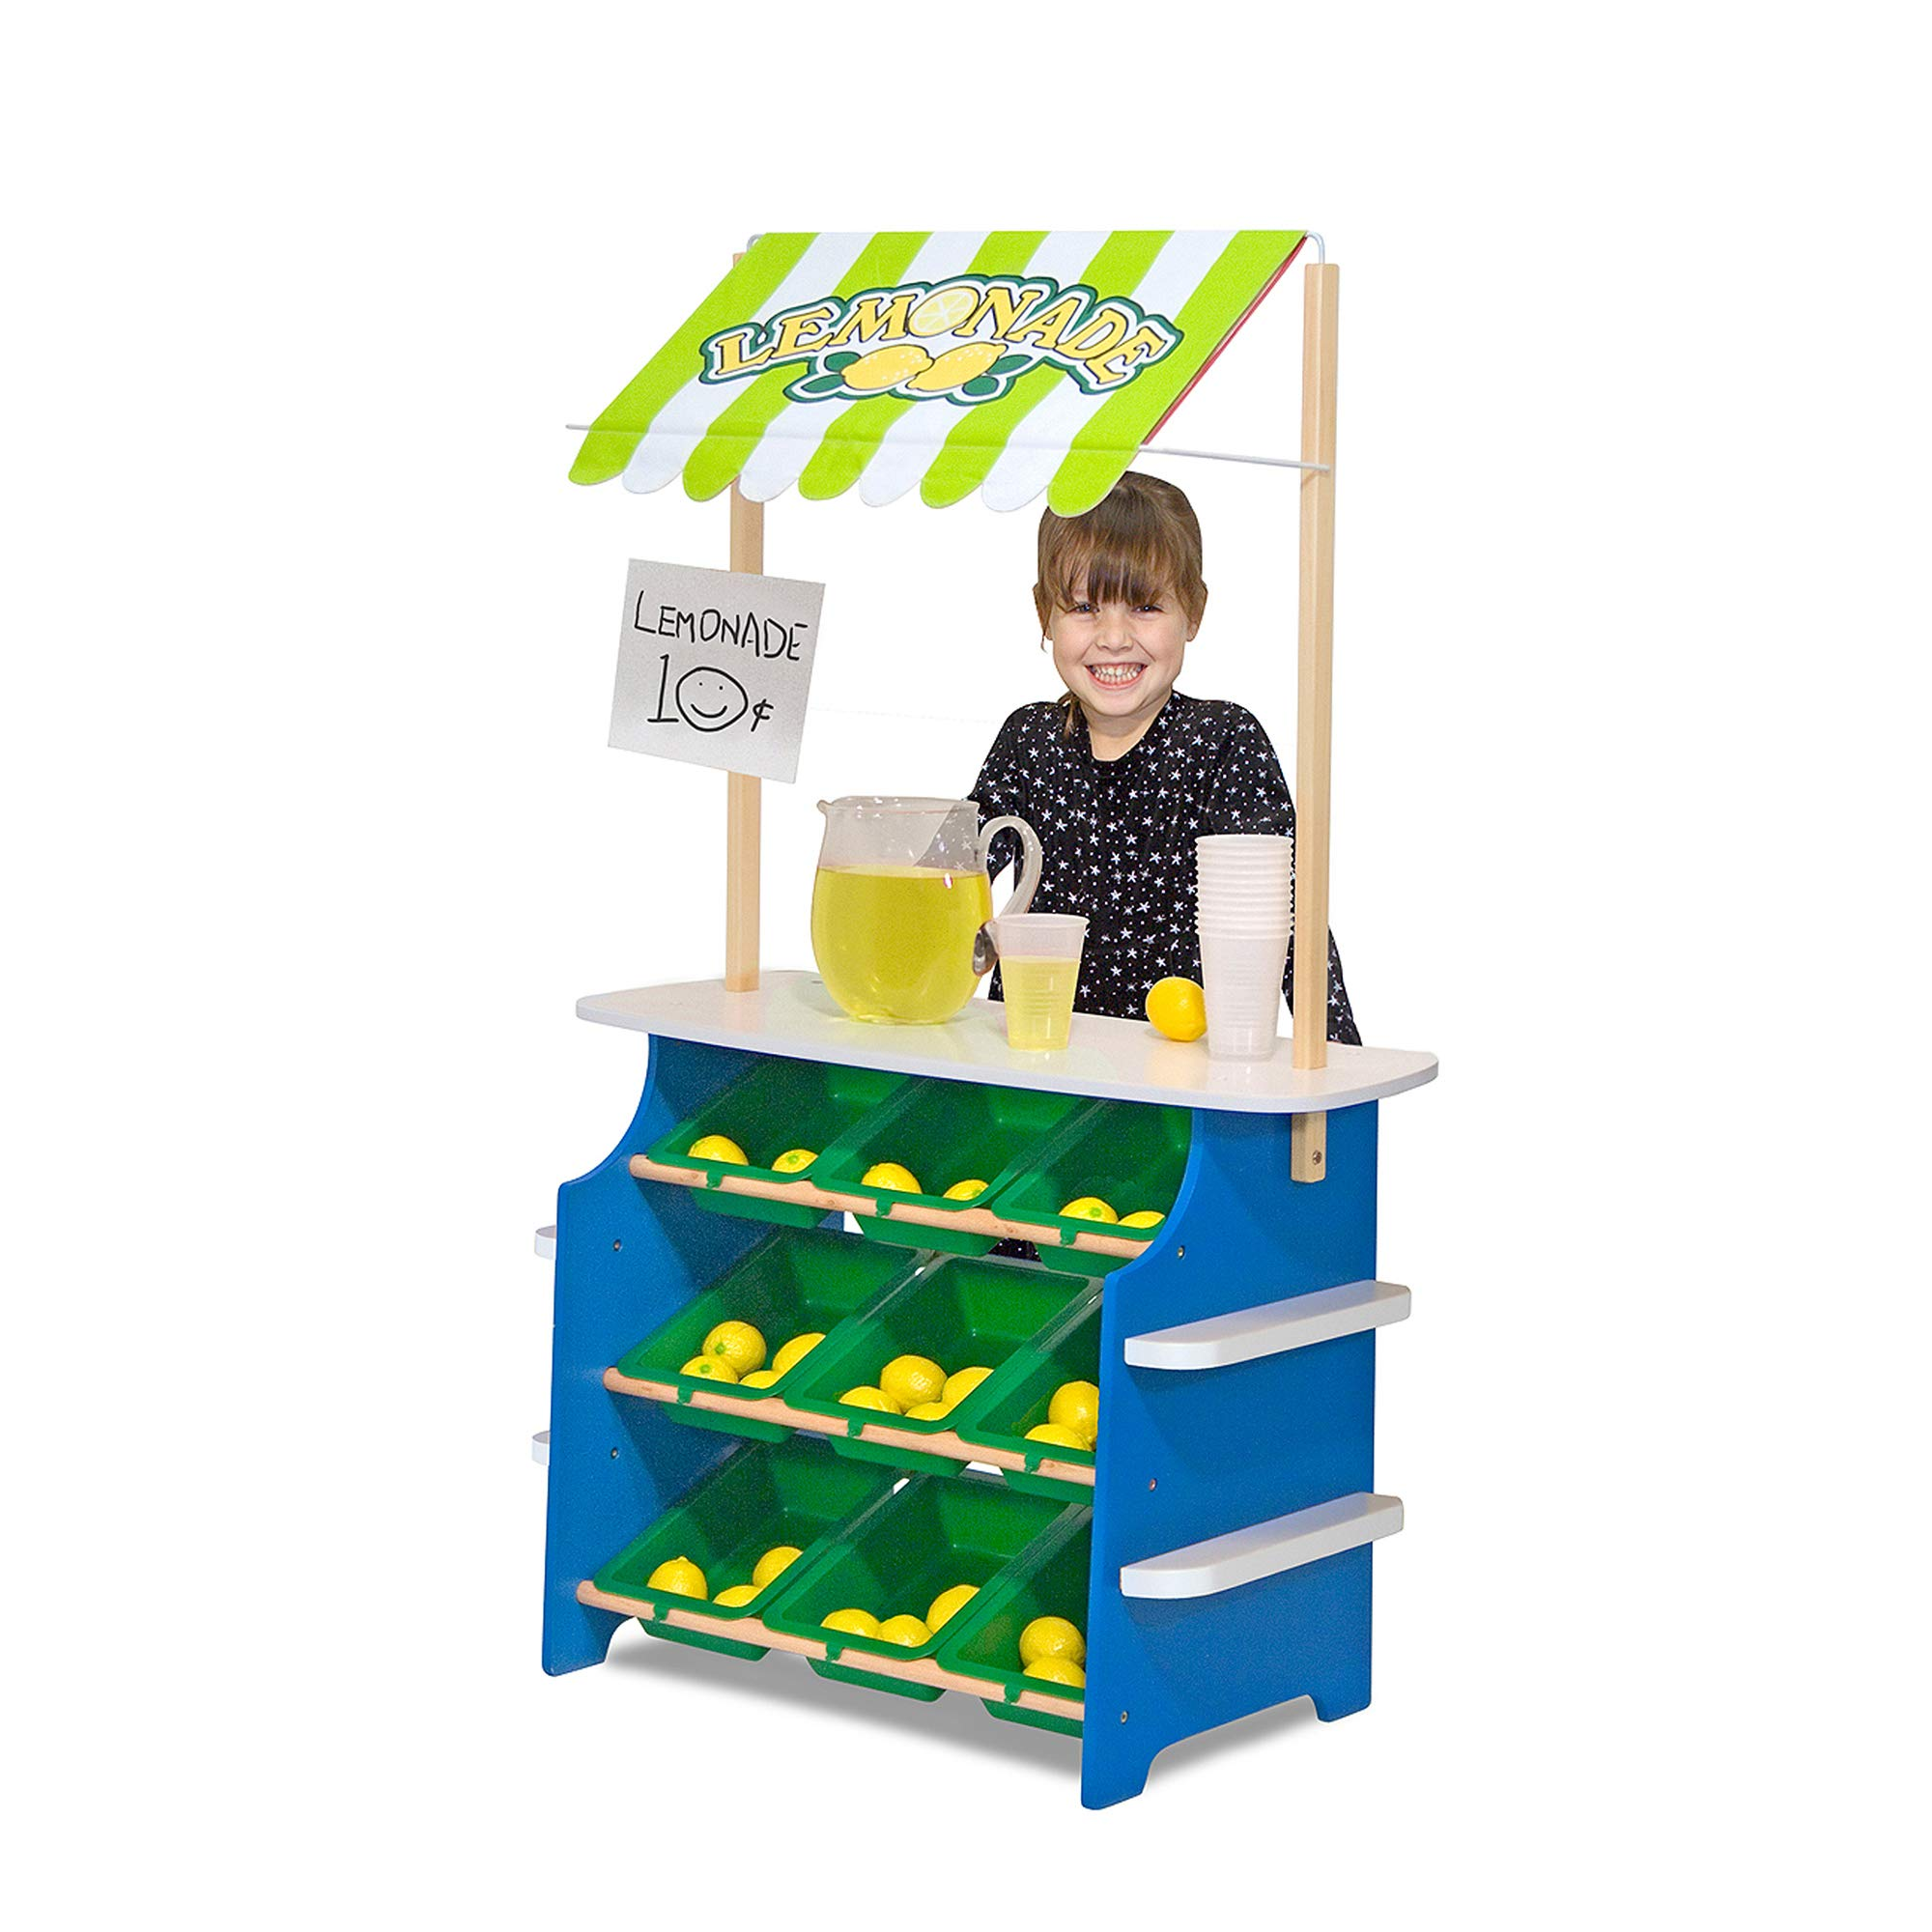 Melissa & Doug Grocery Store/Lemonade Stand (Play Food, Wooden Play Center, Portable Plastic Bins, Sturdy Construction, Great Gift for Girls and Boys – Best for 3, 4, 5, and 6 Year Olds)